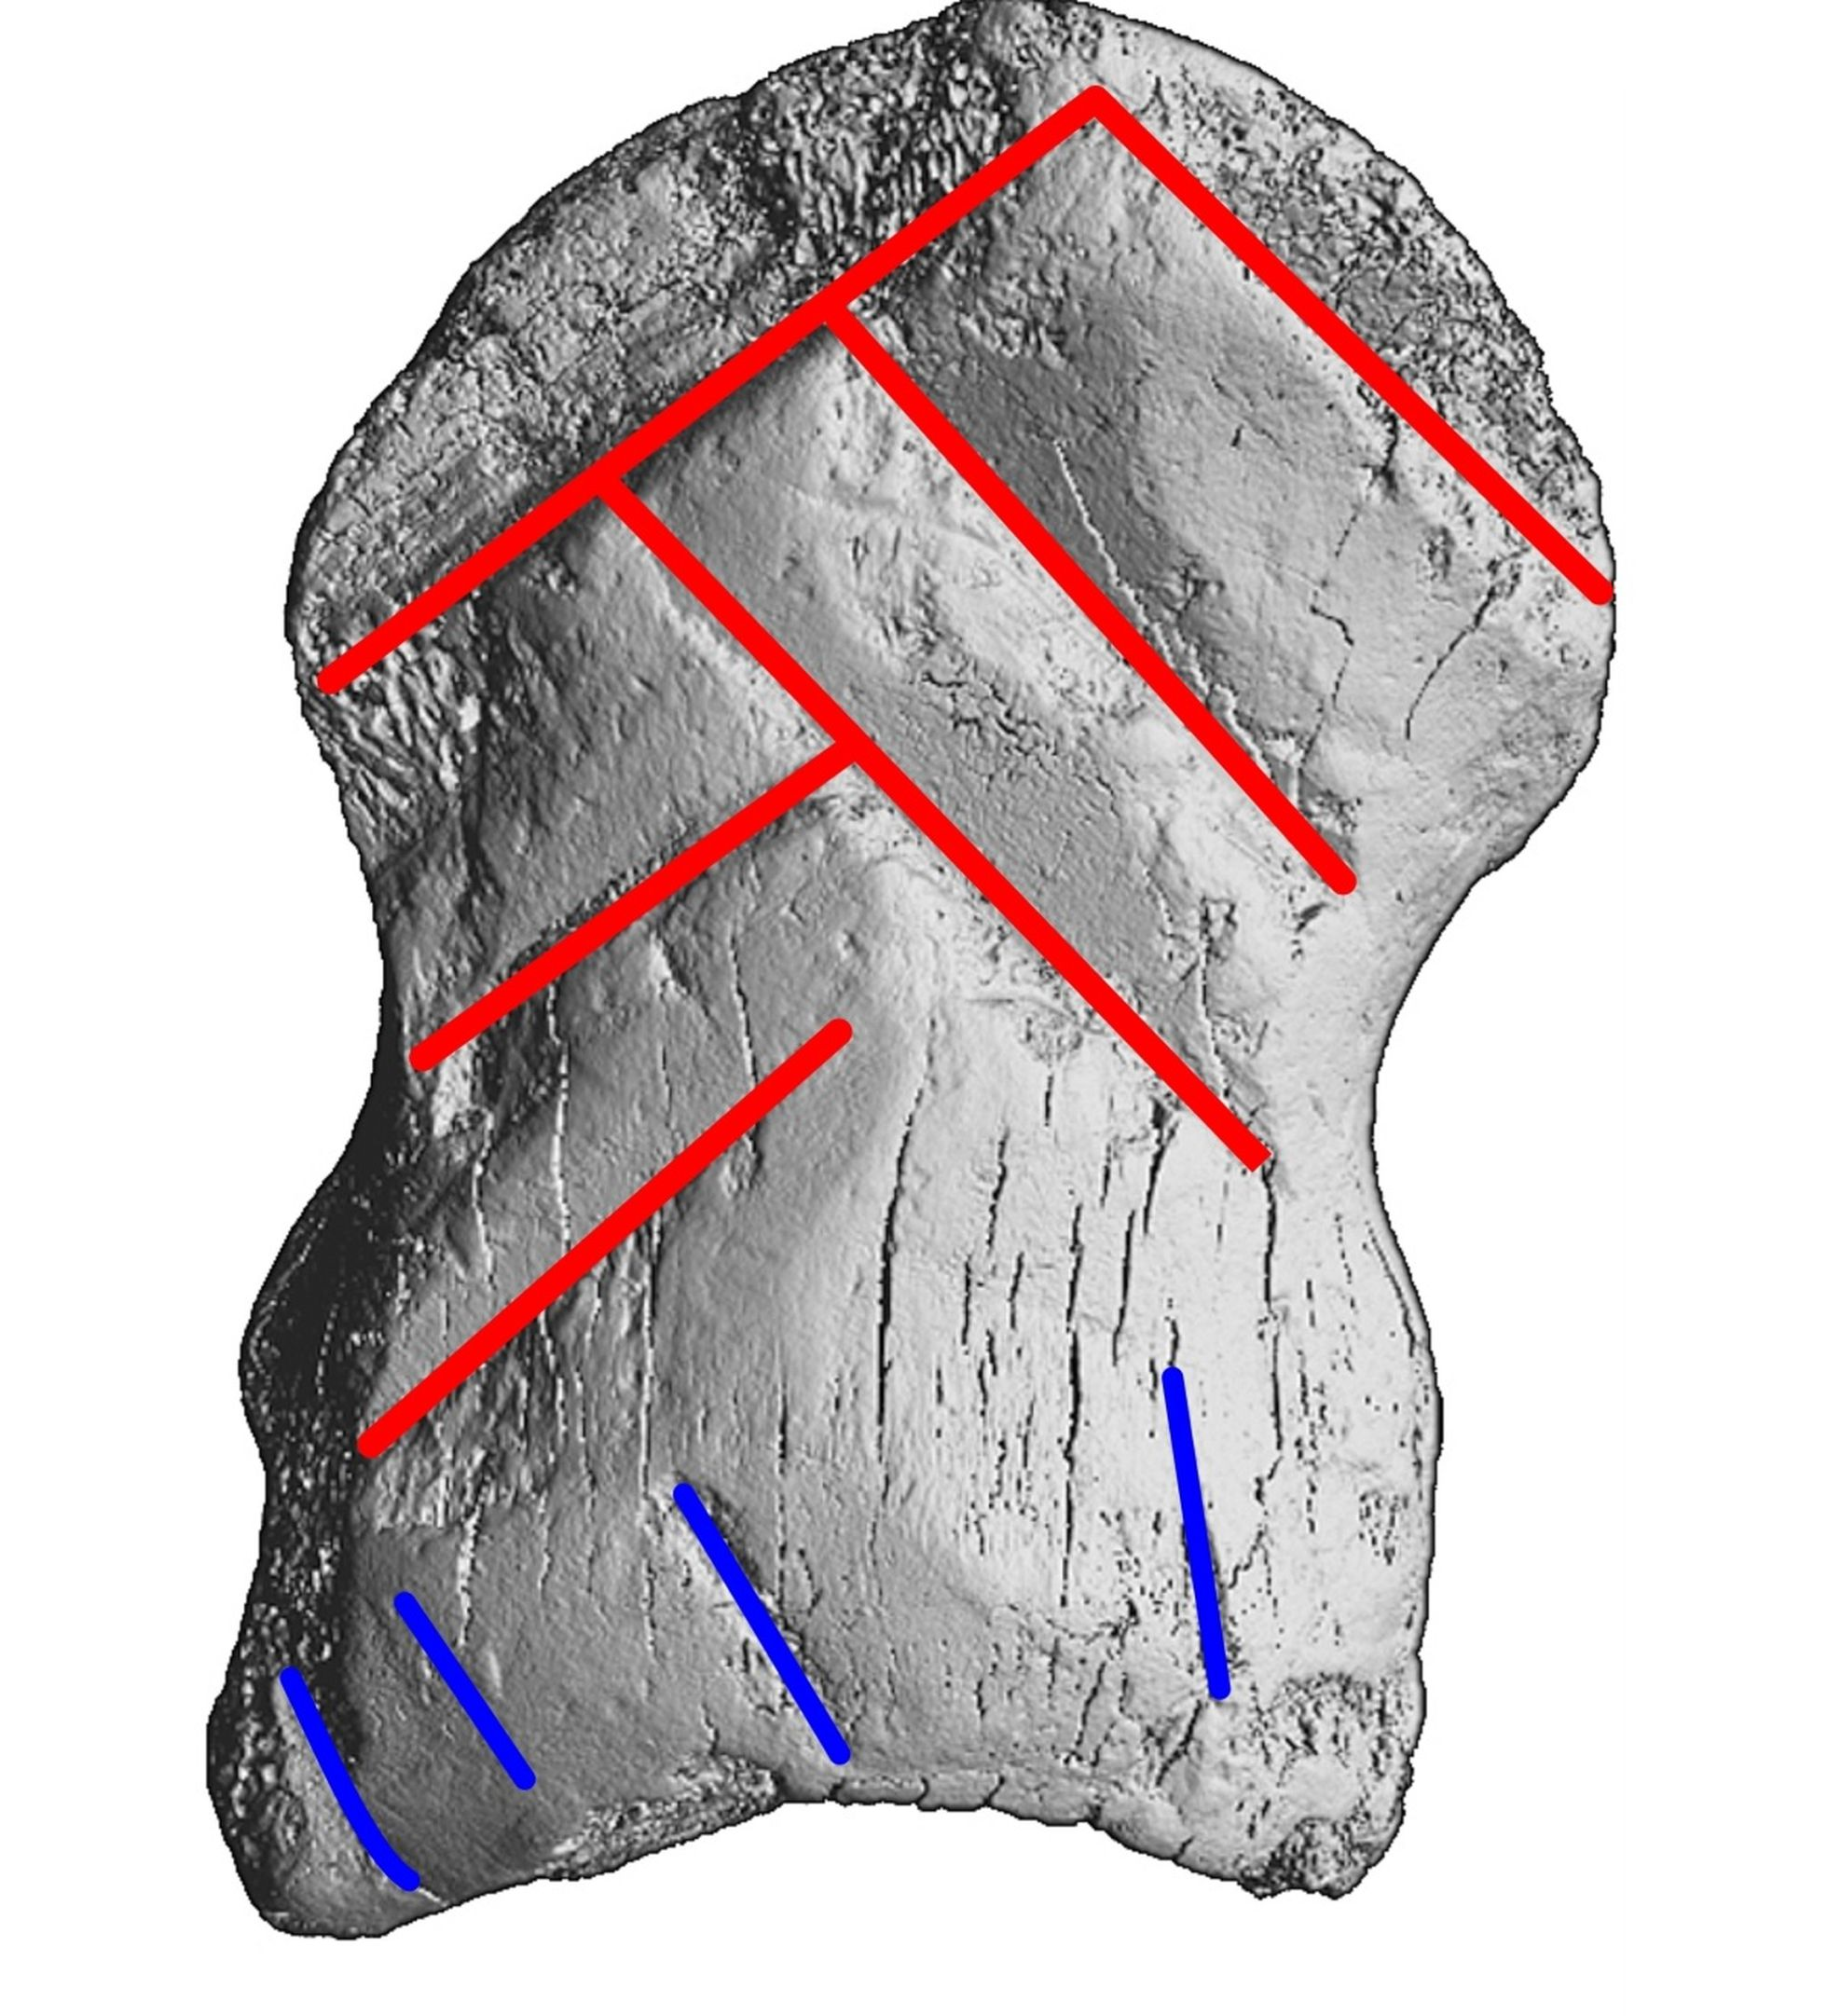 This geometric pattern was probably understood as a message by the Neanderthals.